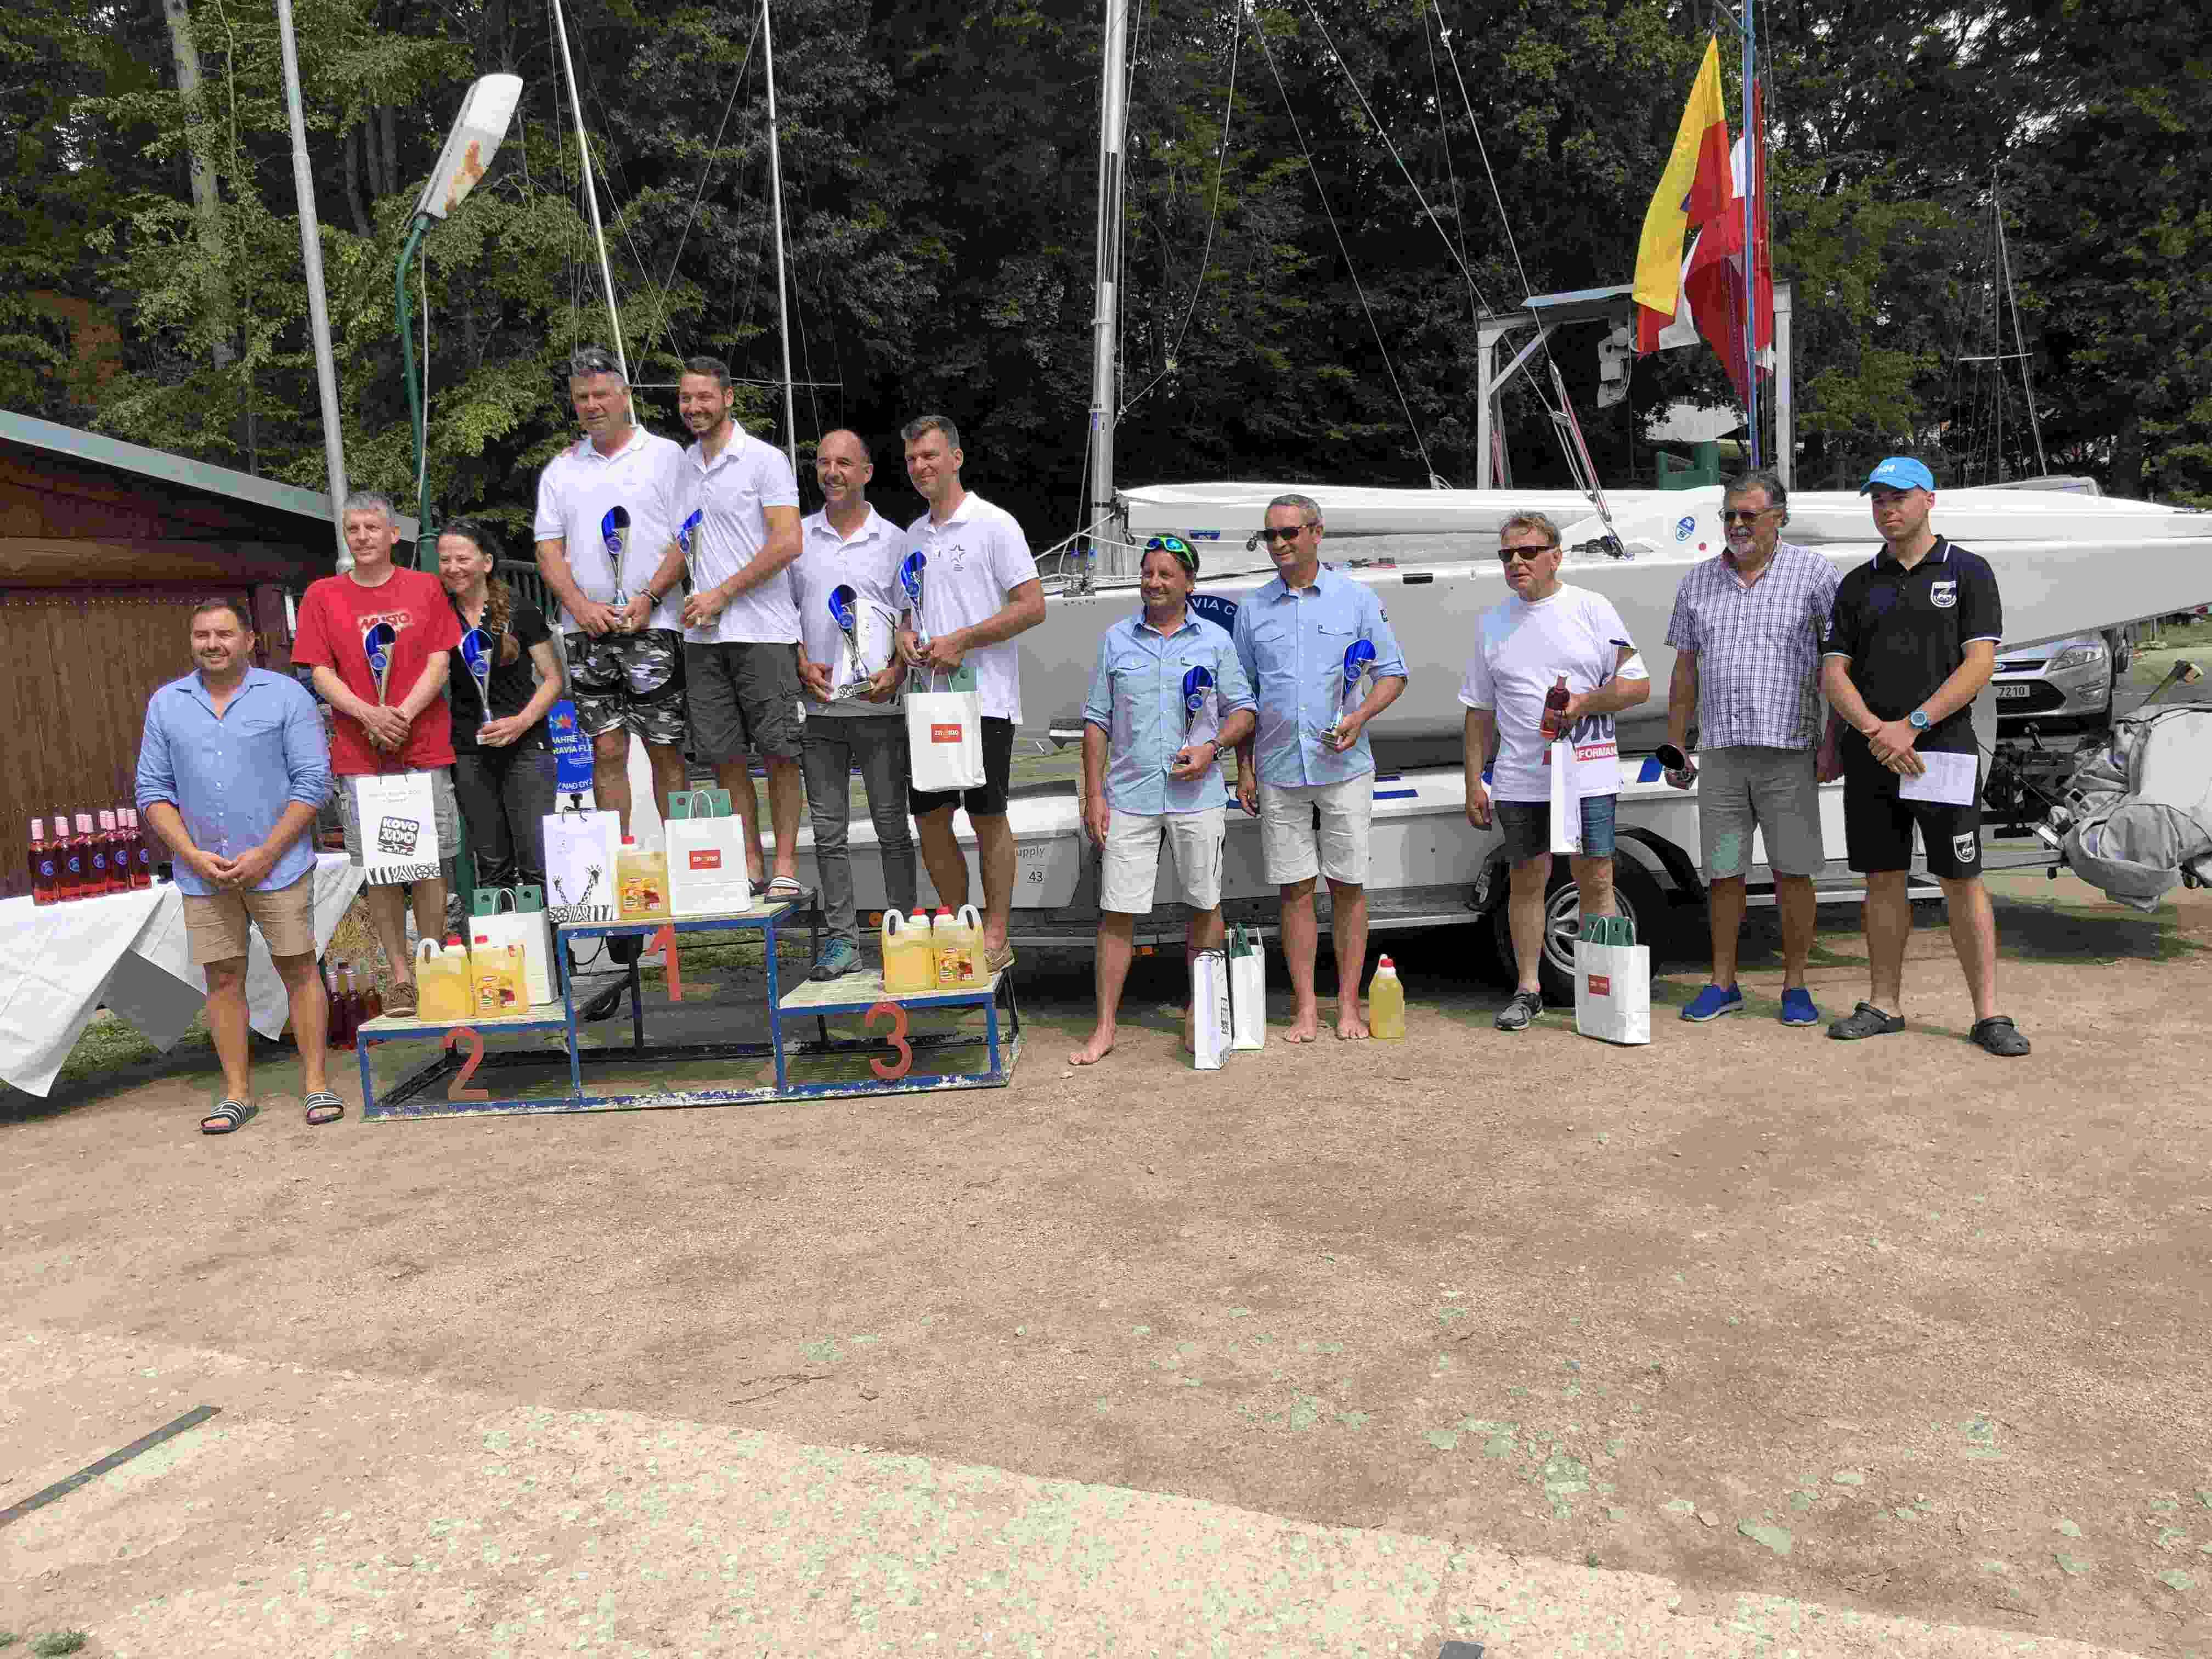 2019 Moravia Cup